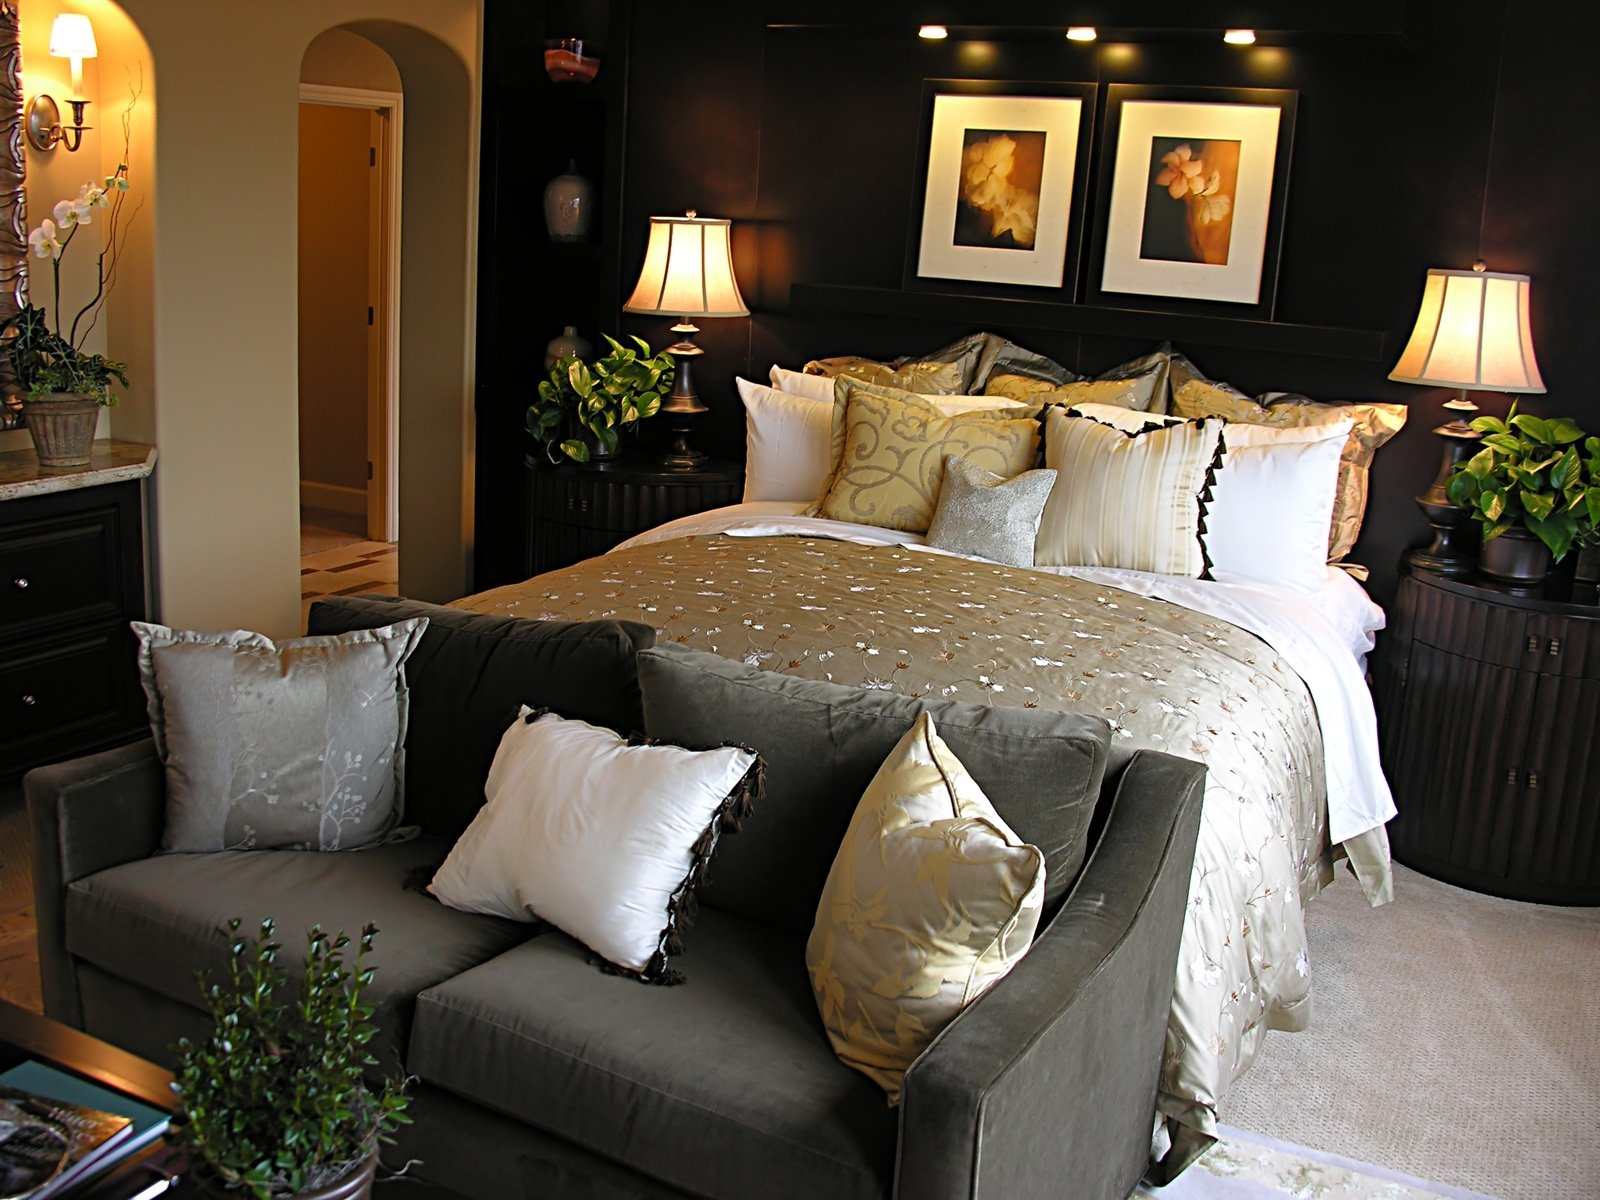 10 Most Recommended Bedroom Decorating Ideas For Couples bedroom decorating ideas for couples bunch ideas of couples bedrooms 2020